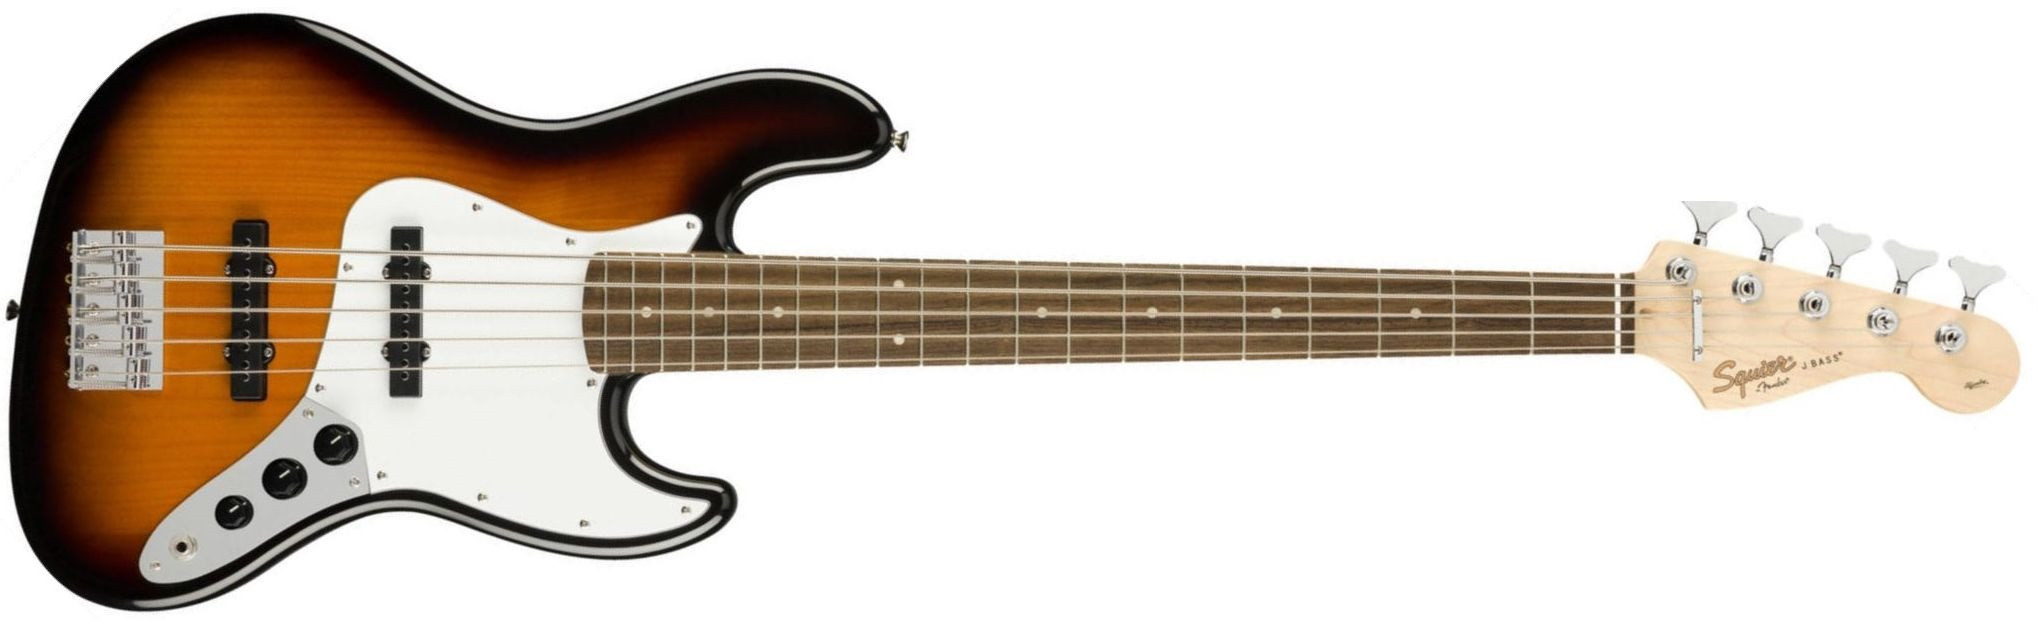 FENDER SQUIER Affinity Jazz Bass V Brown Sunburst Laurel